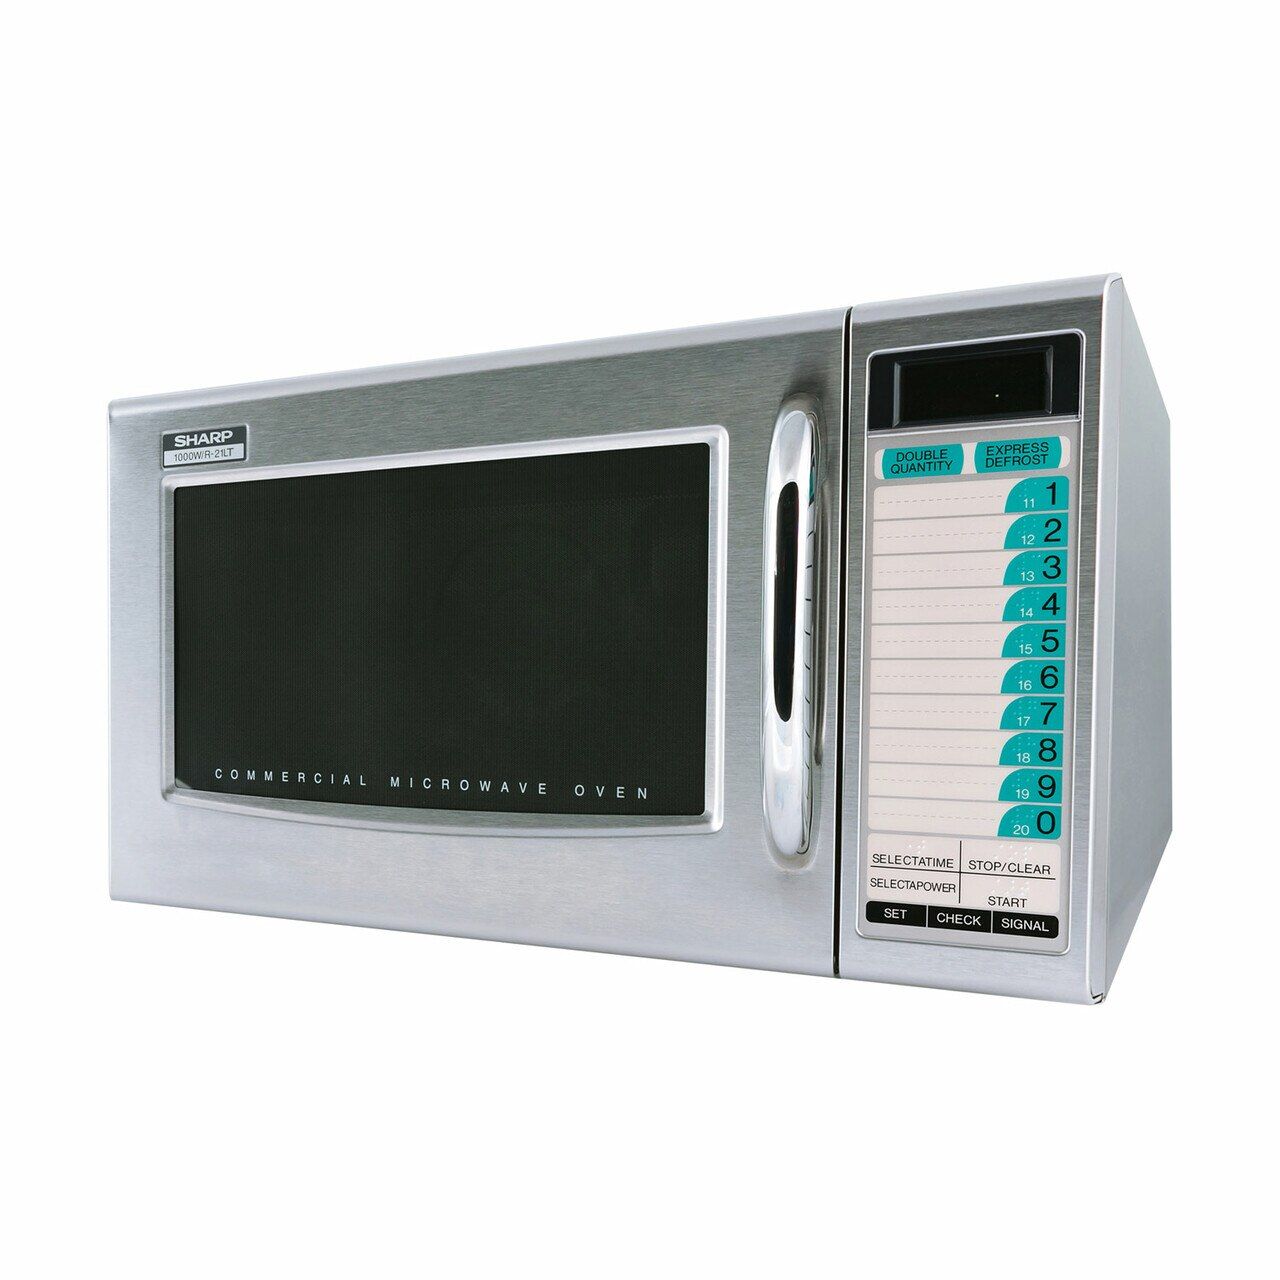 Medium Duty Commercial Microwave Oven with 1000 Watts (R21LTF) – left side view